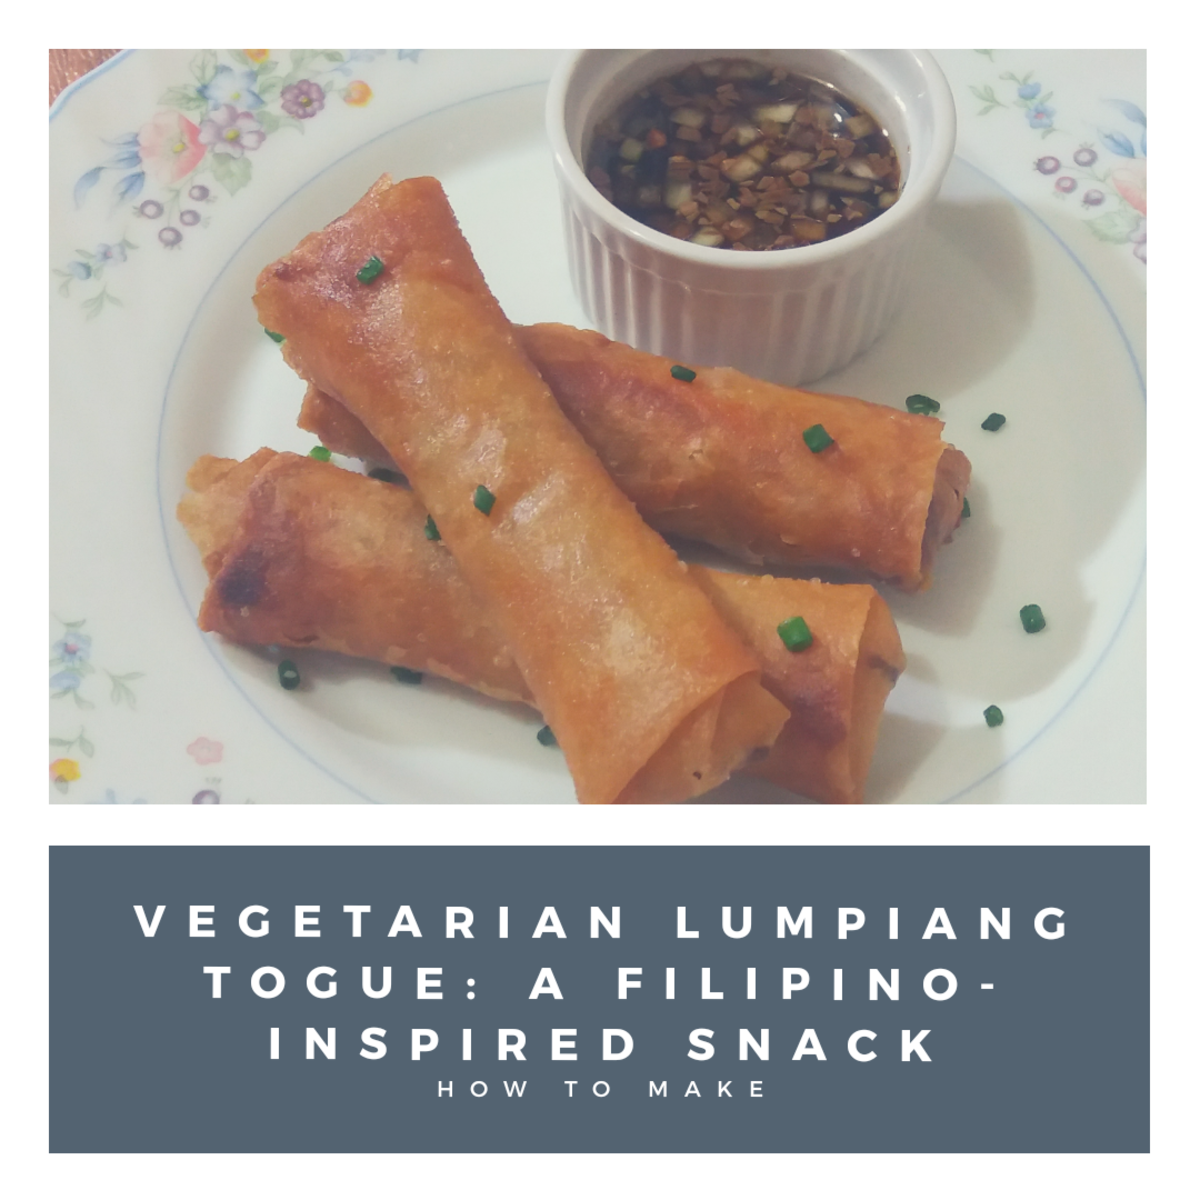 Discover how to make vegetarian lumpiang togue, a Filipino-inspired snack.